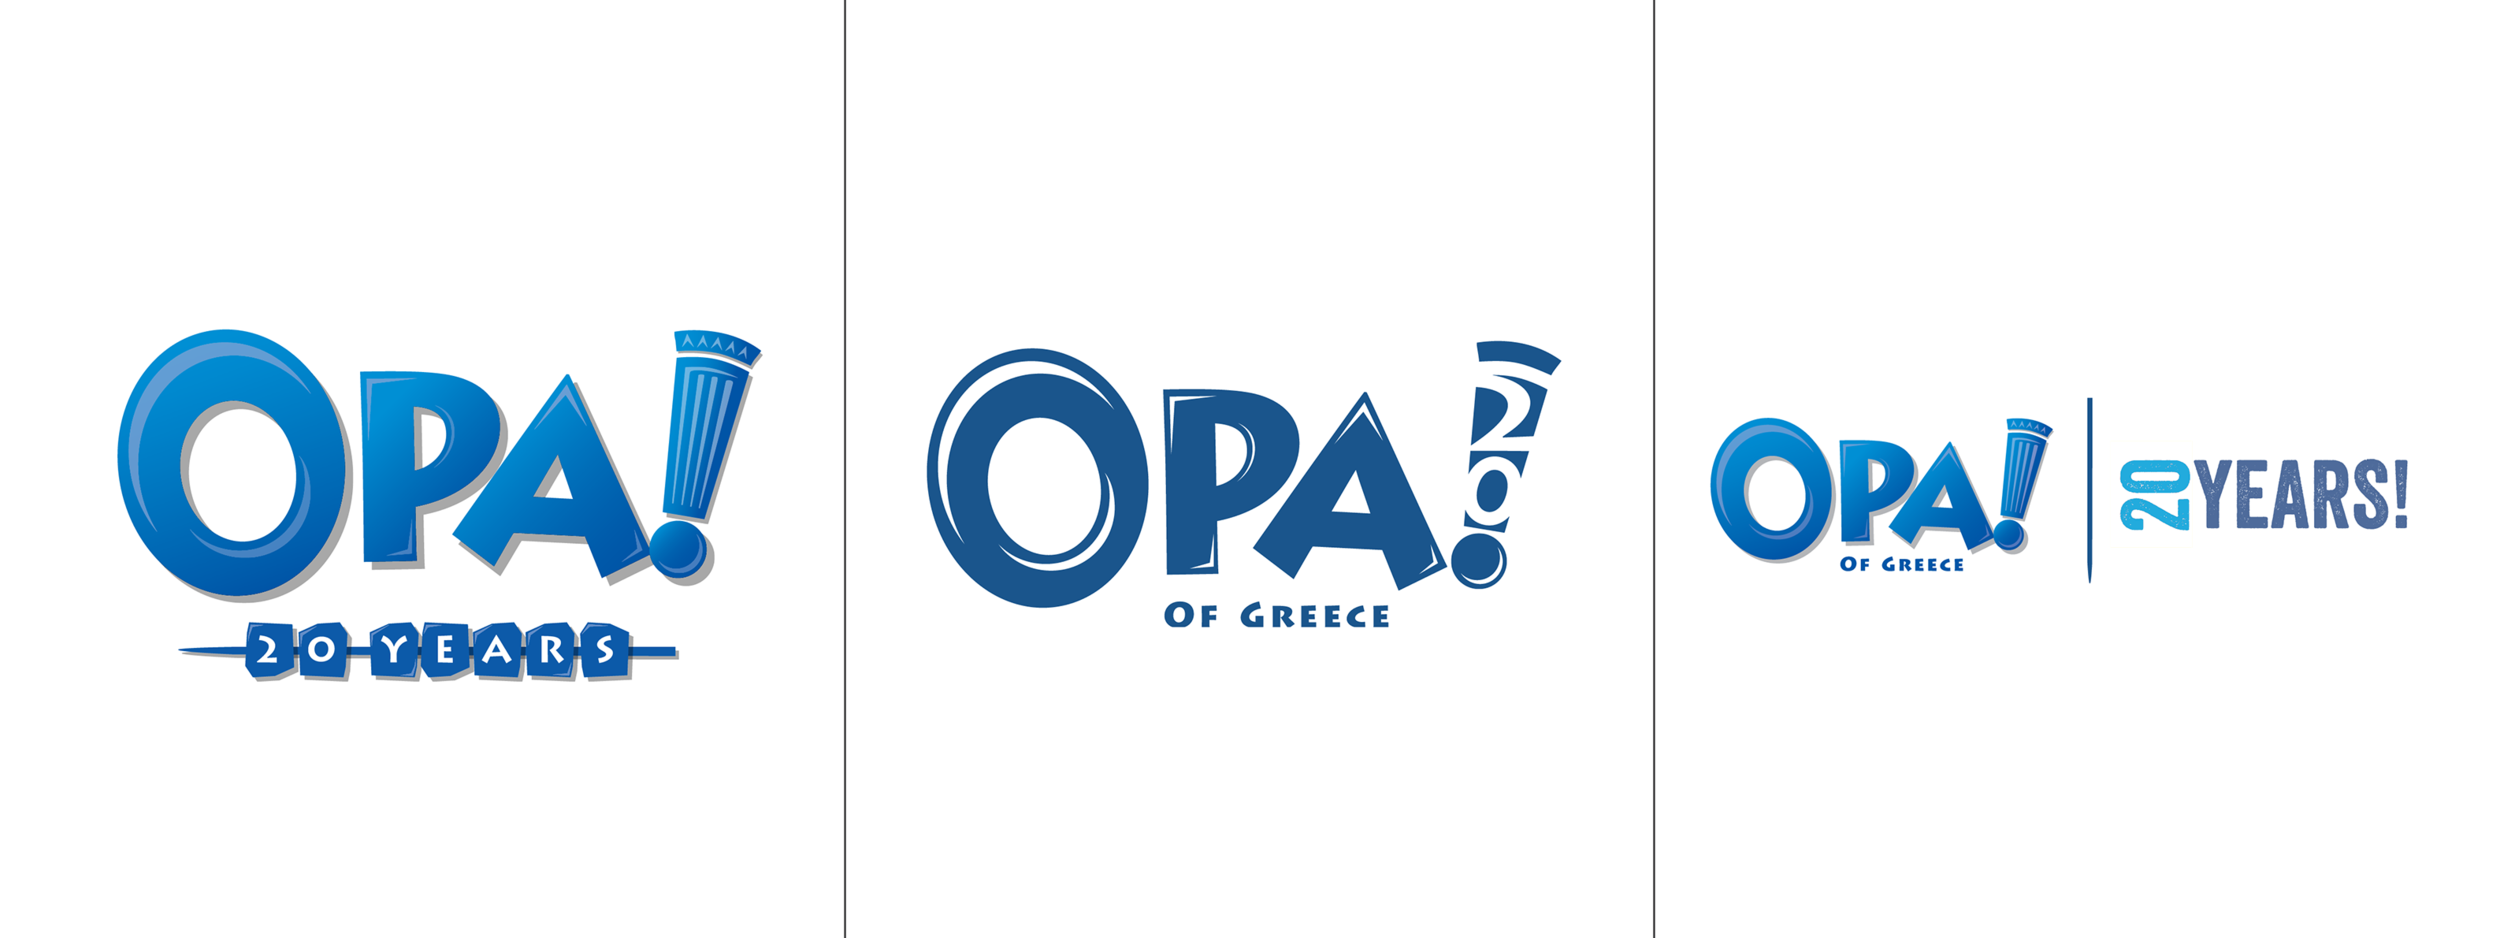 OPA20_3options.png